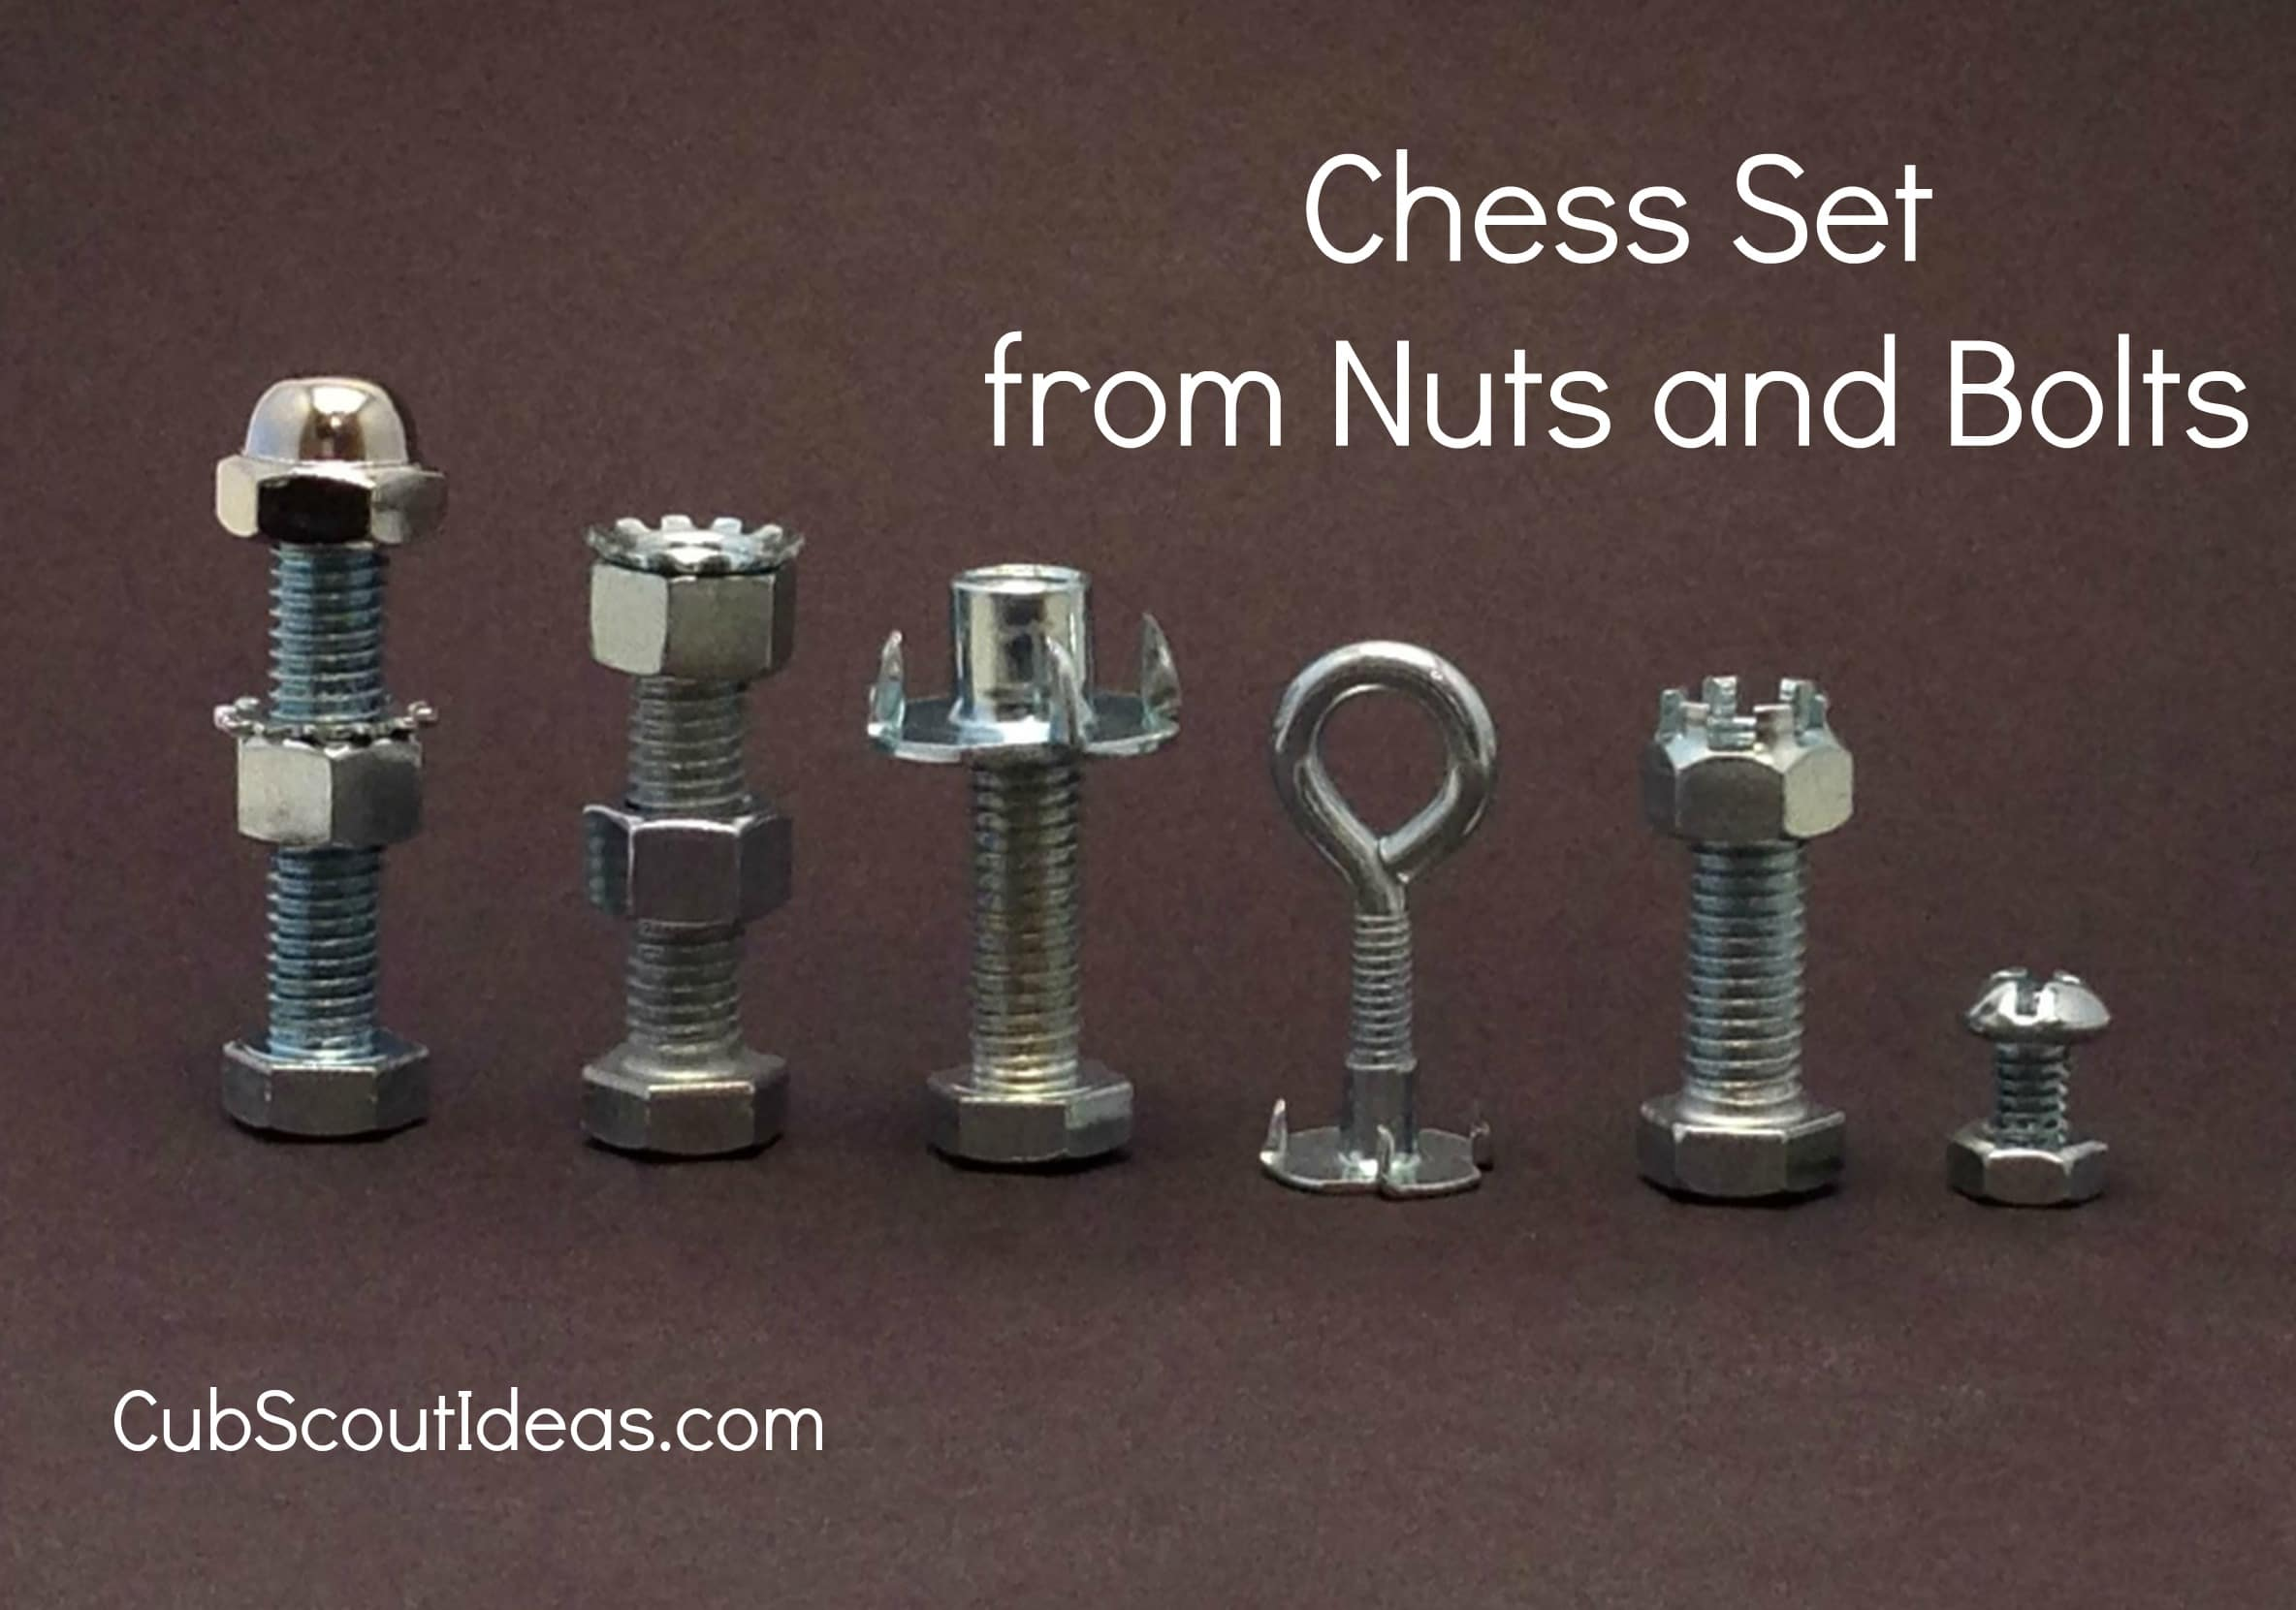 Webelos Craftsman project chess set